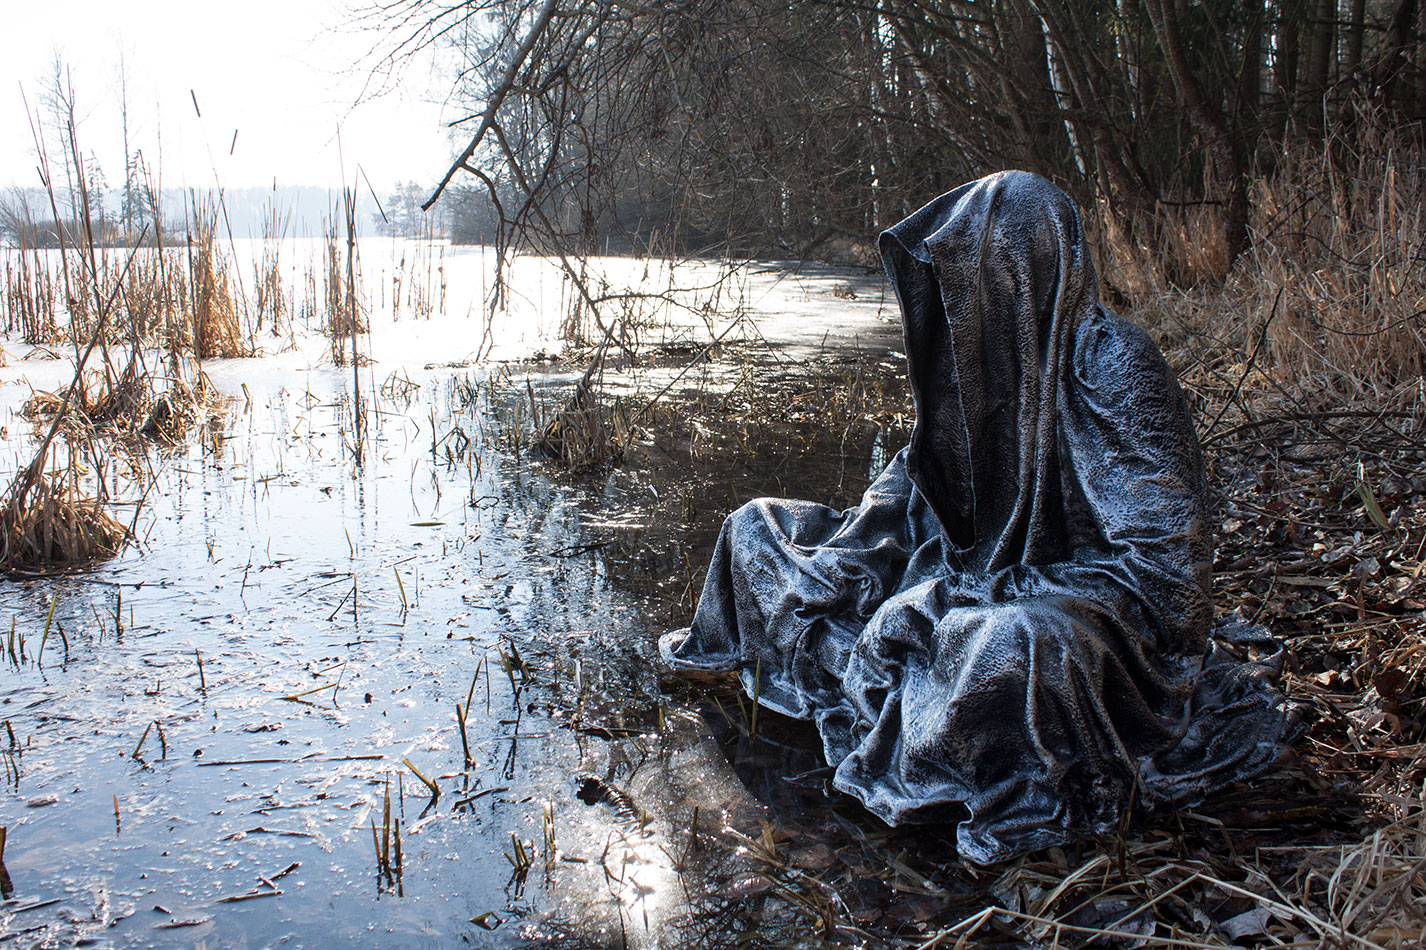 waldviertel-fish-pond-lake-lower-austria-contemporary-art-design-photography-arts-antique-guardians-of-time-manfred-kili-kielnhofer-7639